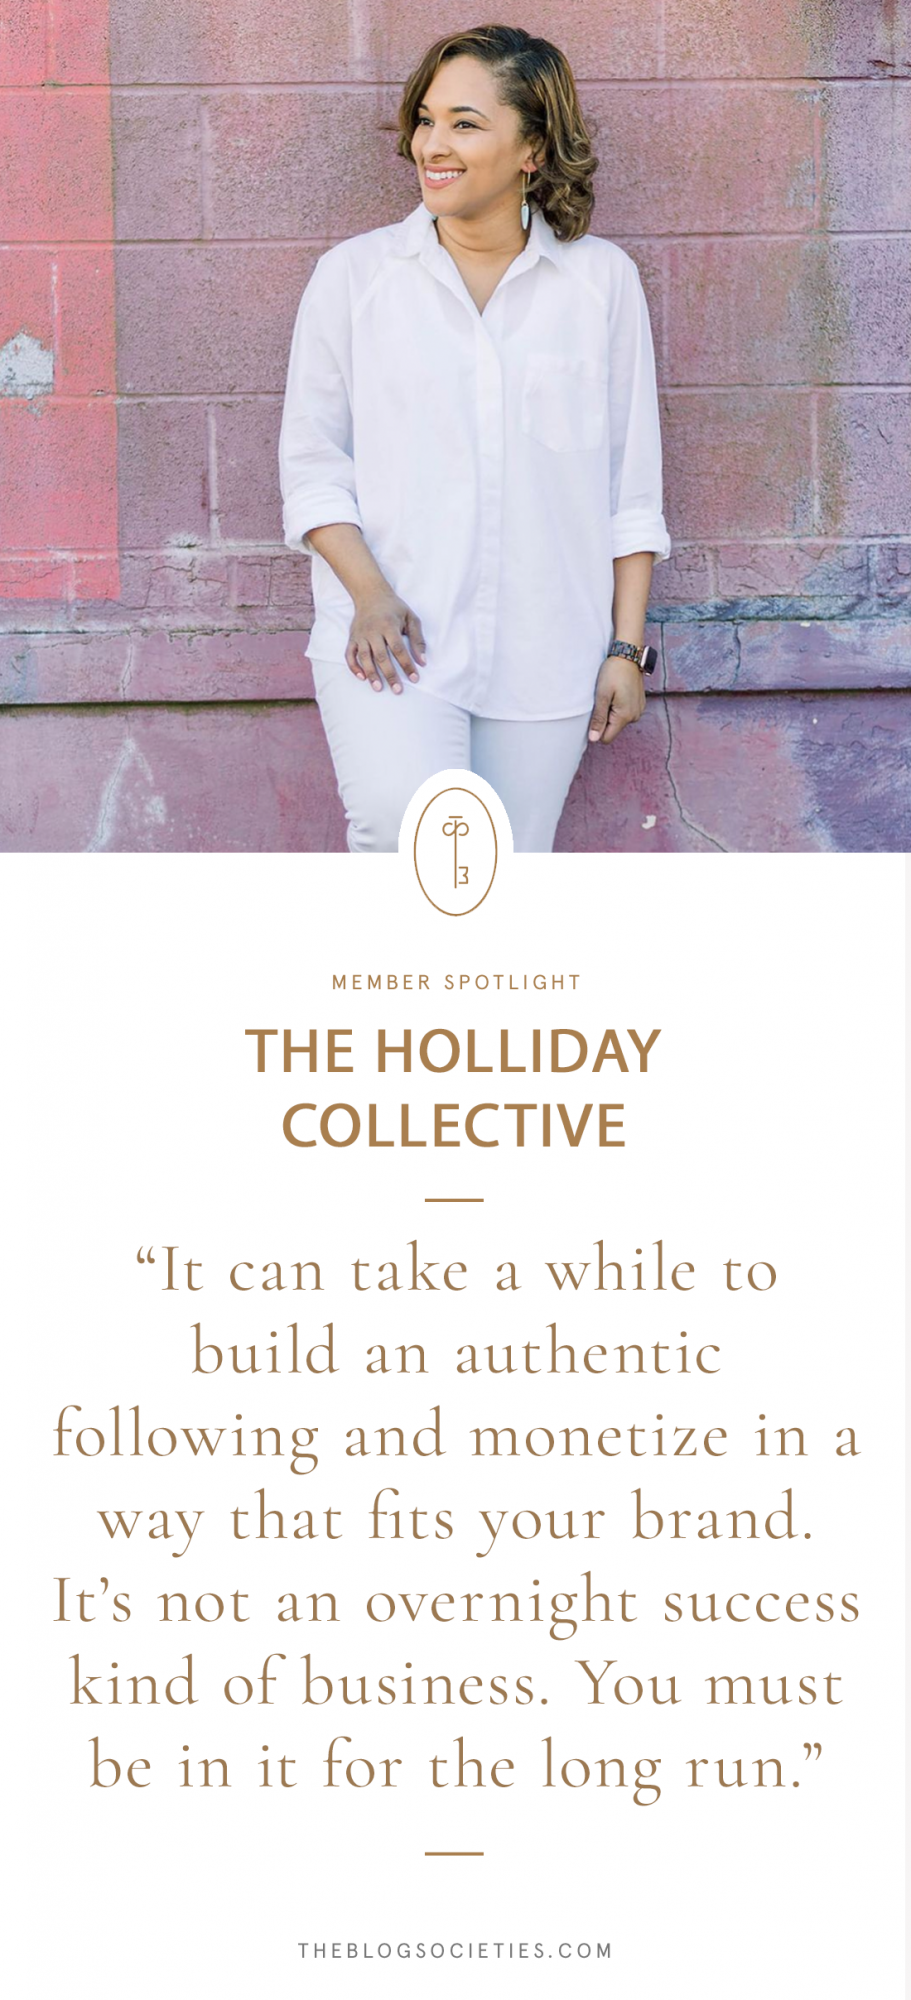 Crystal of The Holliday Collective